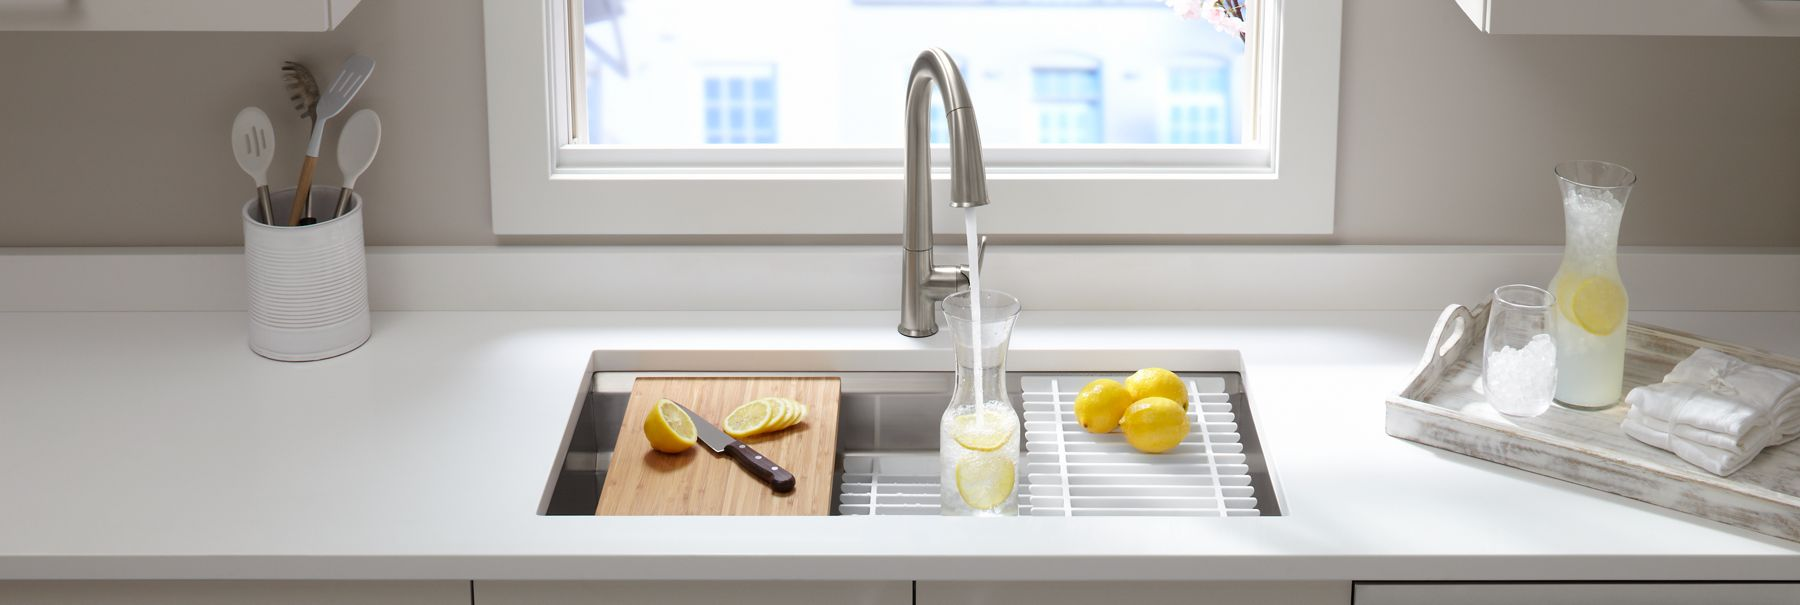 Select kitchen sinks now 20 off through may 19